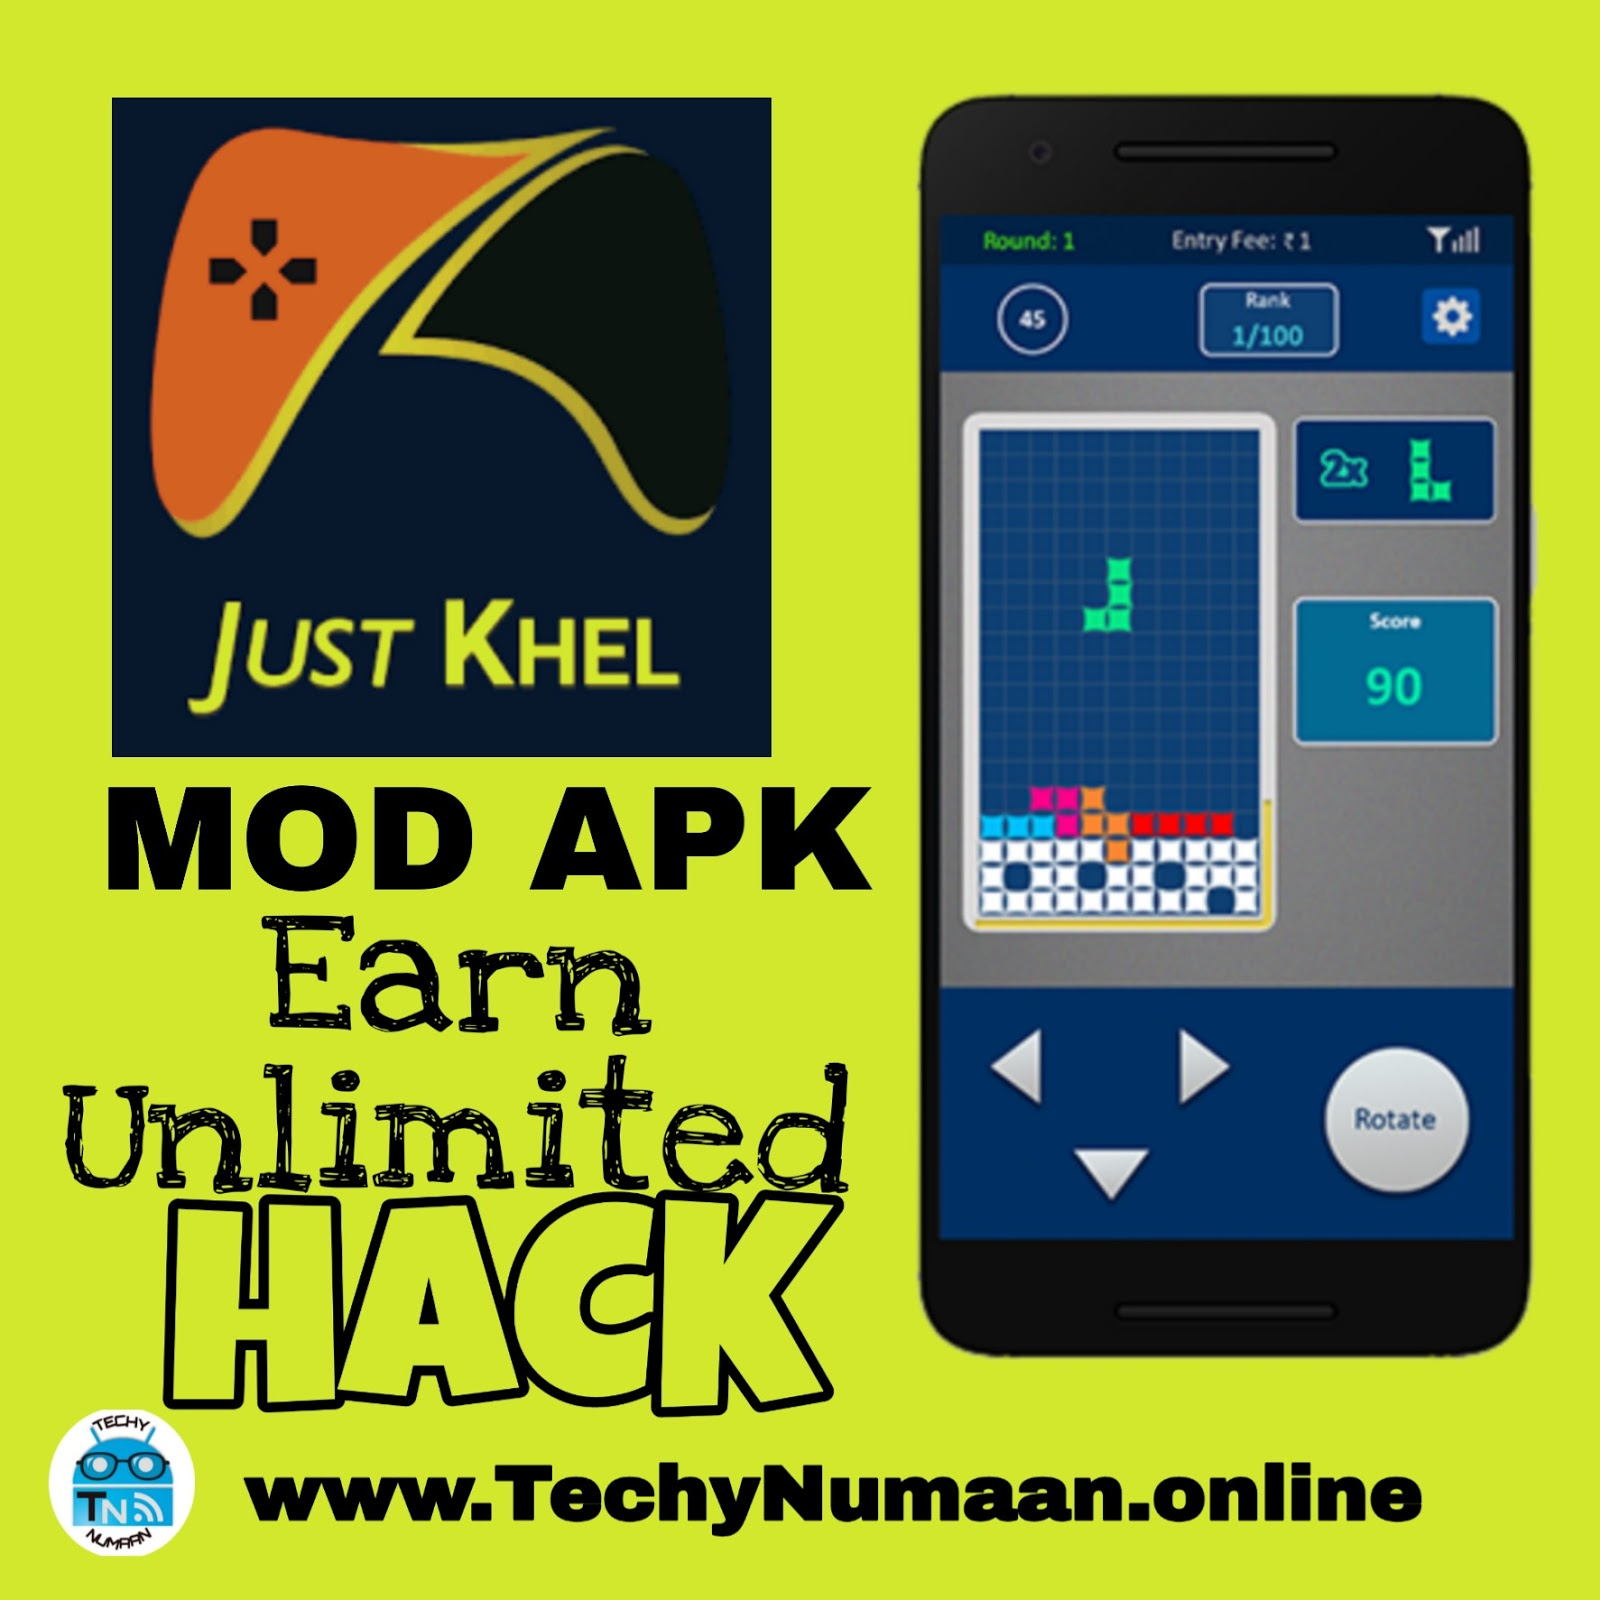 Just Khel Mod Apk Win Every Game 100% working and Genuine